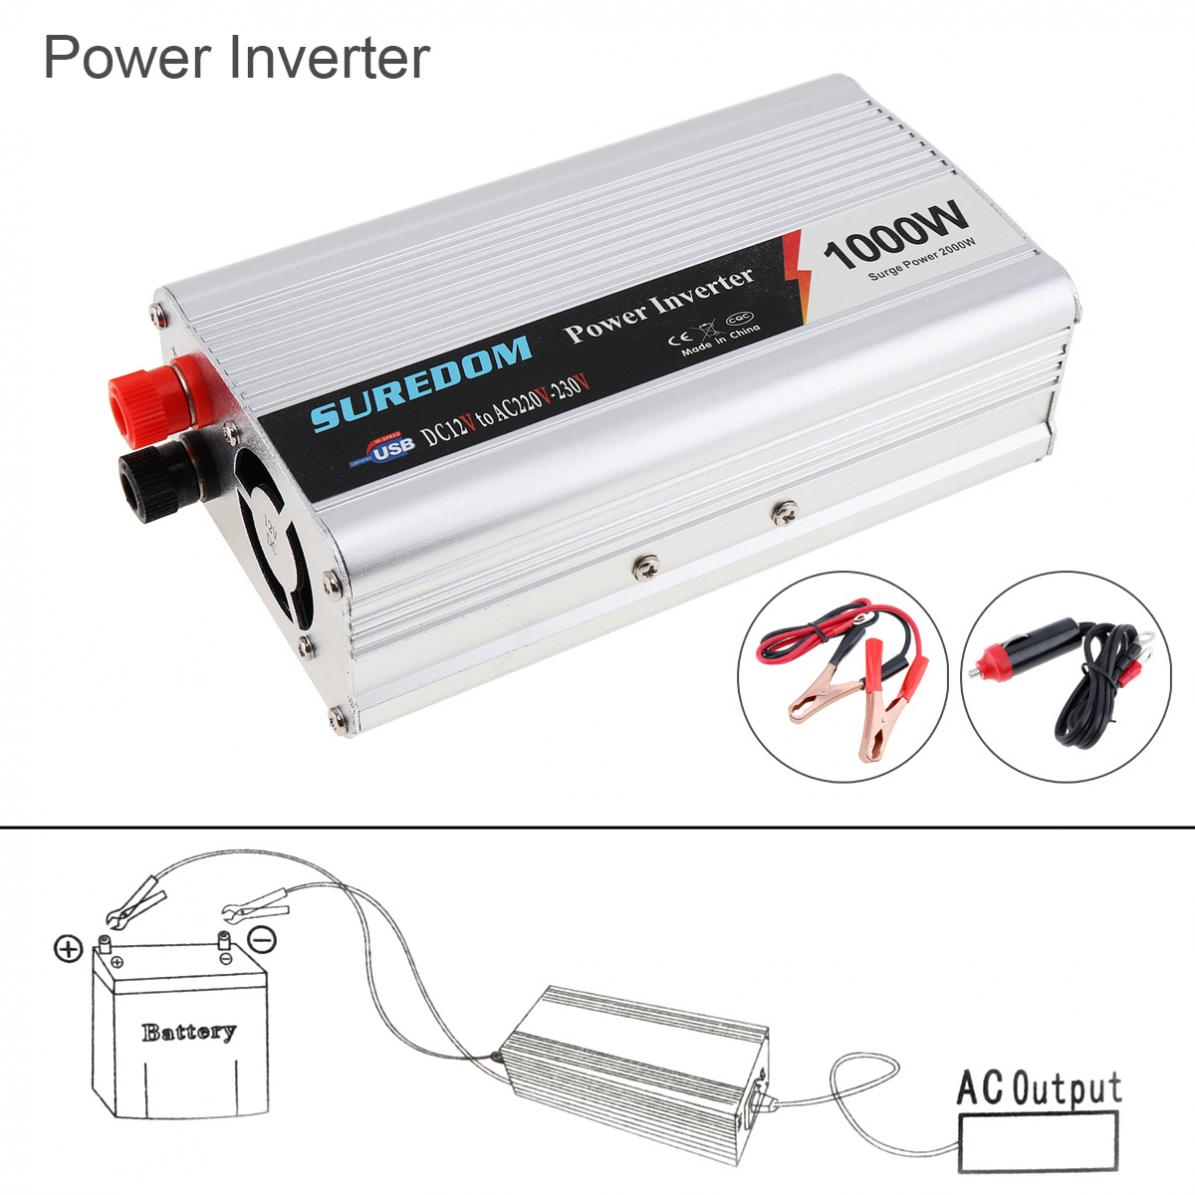 1000W DC 12V <font><b>24V</b></font> to AC <font><b>220V</b></font> 110V USB Portable Power <font><b>Inverter</b></font> Adapter Charger Universal Voltage Converter Surge Power <font><b>2000W</b></font> New image